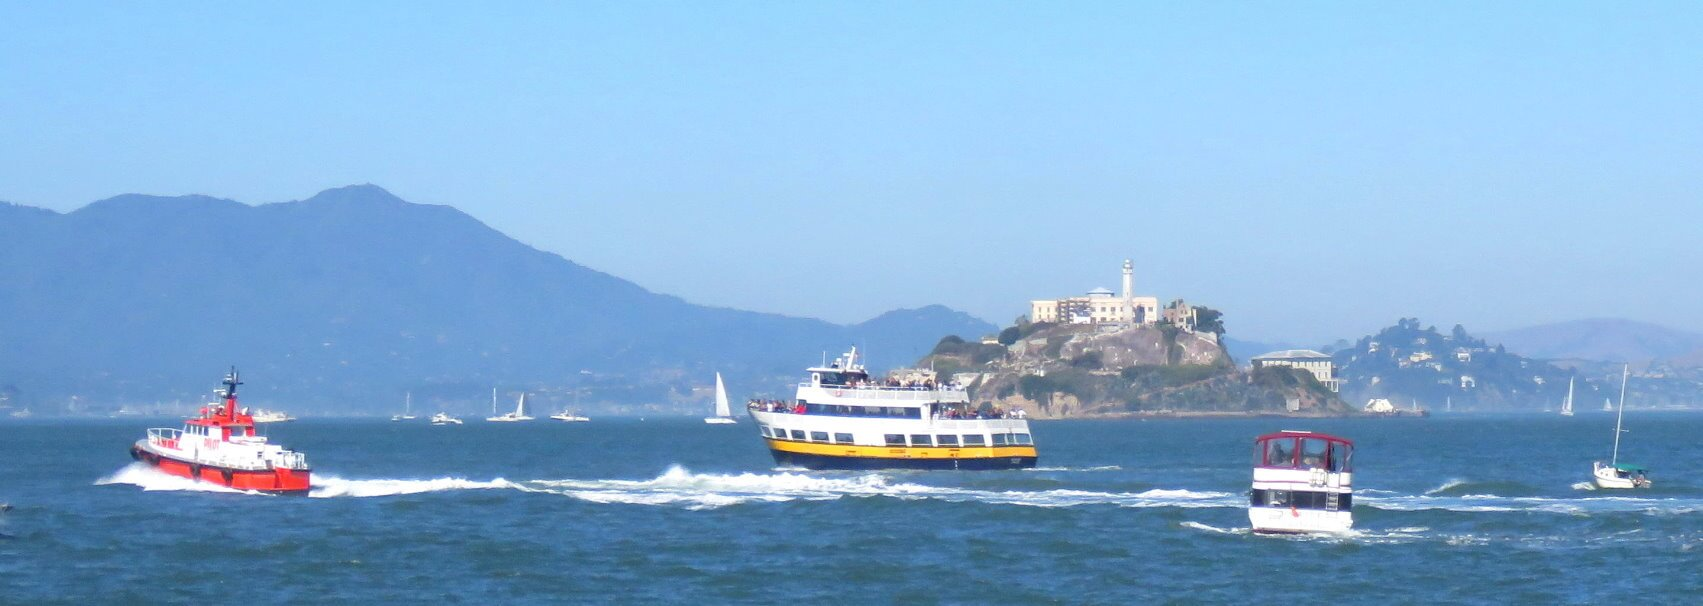 sf_city_guided_tour_and_bay_cruise_ferry_trip_in_the_san_francisco_bay